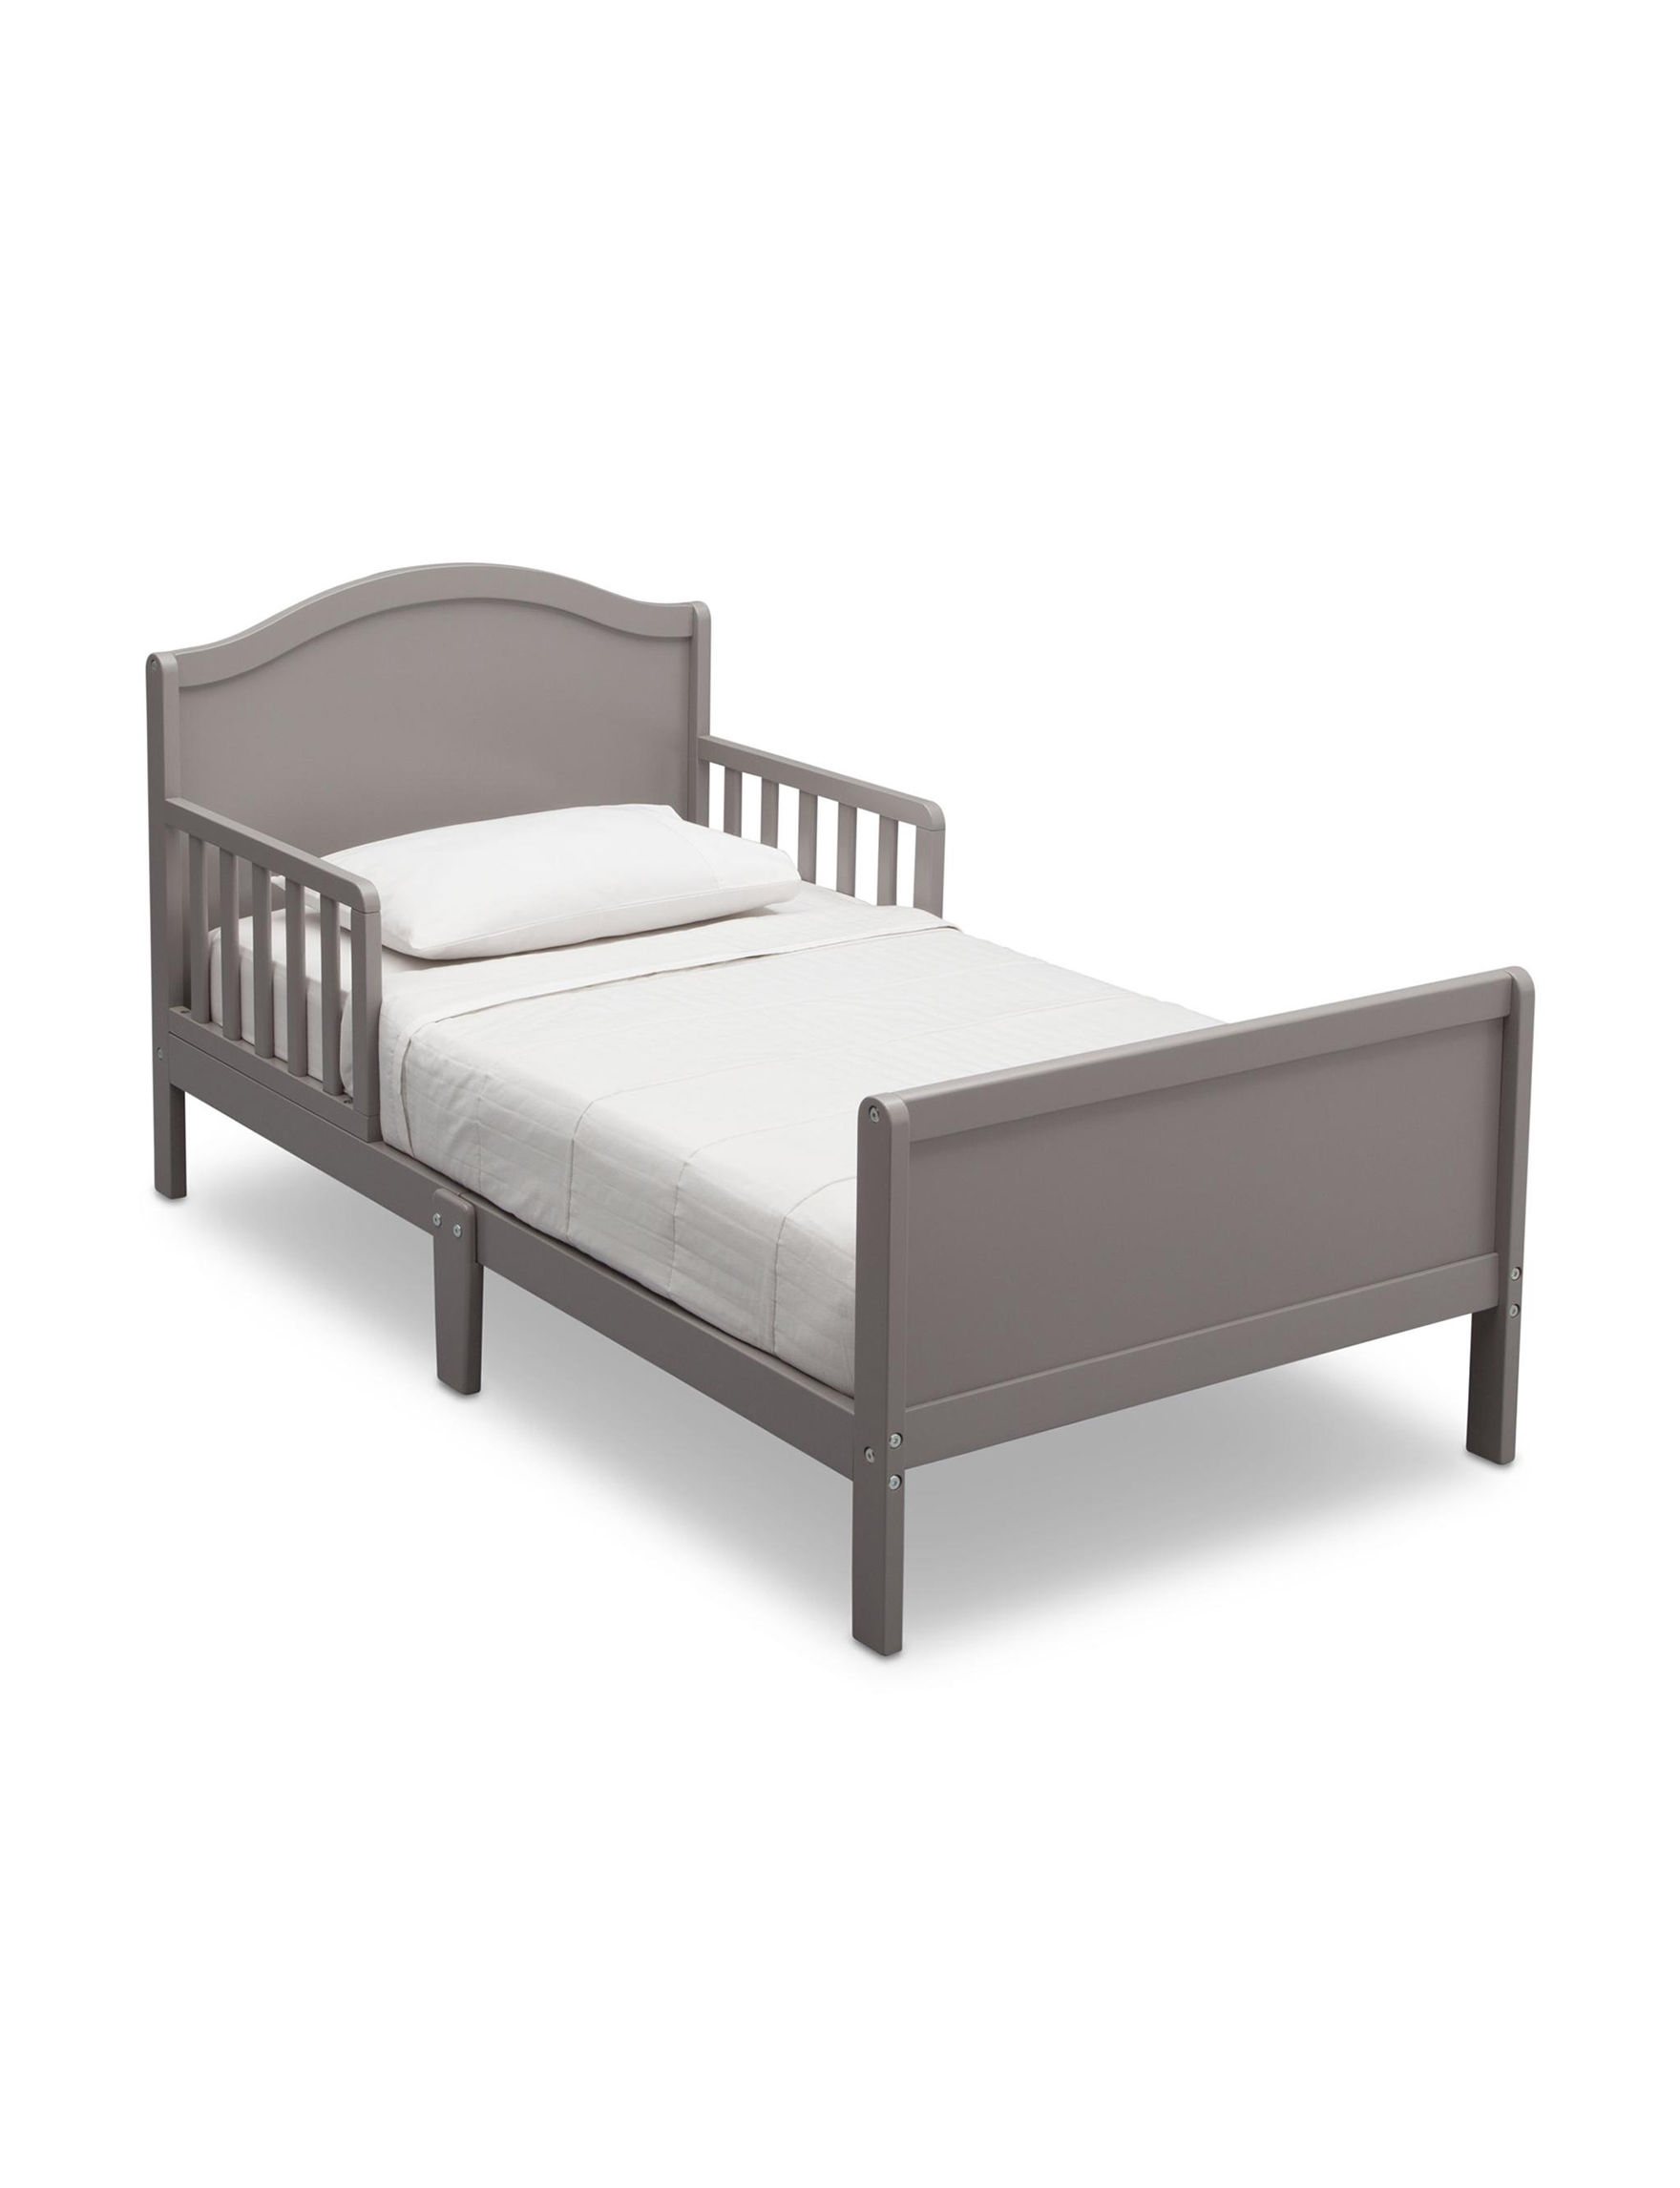 Delta Grey Beds & Headboards